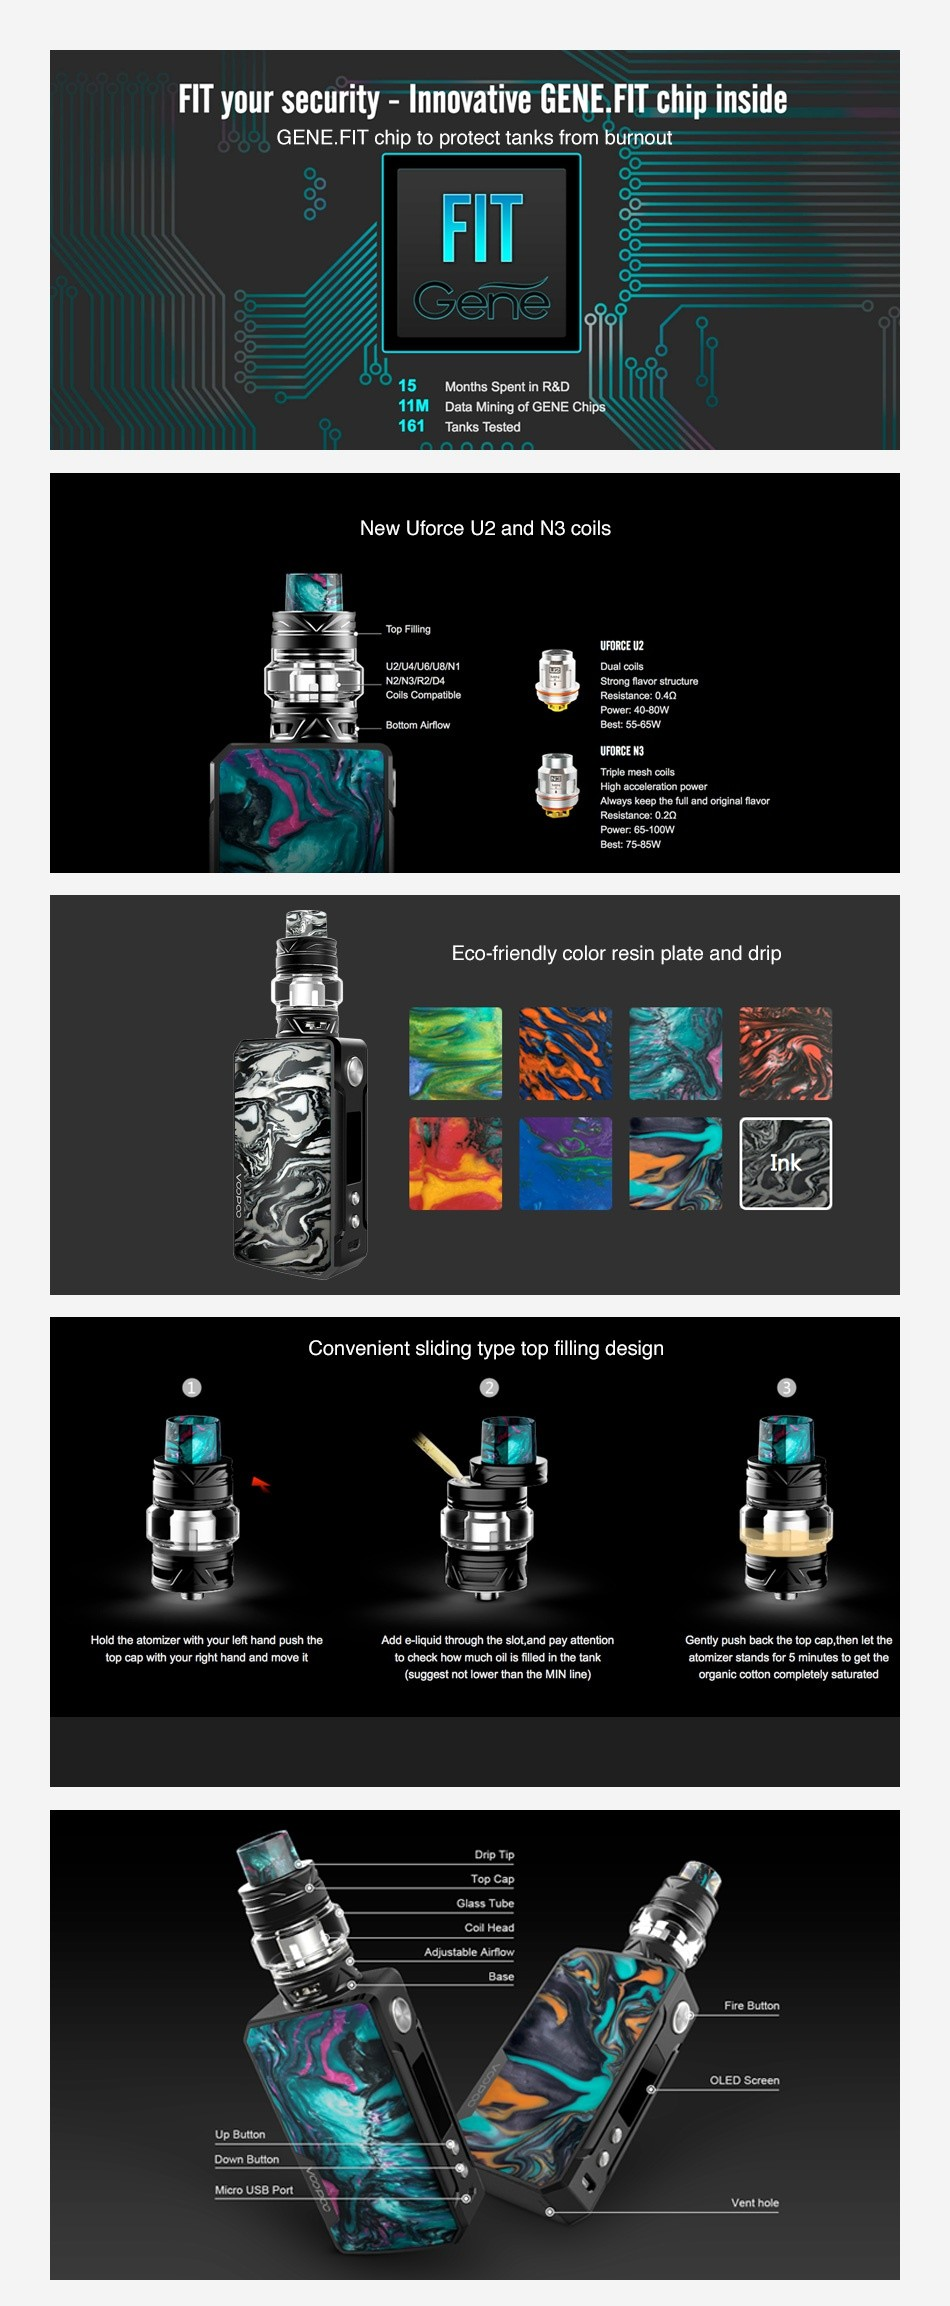 VOOPOO Drag 2 177W TC Kit with UFORCE T2 FIT your security  Innovative GENE FIT chip inside loo GENE FIT chip to protect tanks from burnout FIT 15 Months Spent in R D ata Mining of GENE Chips 161 Tanks Tested New force u2 and n3 coils UFORCE UZ Dual coils Powor  85 100W Eco friendly color resin plate and drip Convenient sliding type top filling design top cap with your nght hand anc move it to check how much oil is tiled n tre tank atomizer stands for 5 minutes uggest not lower than the MIN Ine  organic cotton completely satureted Drp TIp Fire Butter OLED Sereen Down Button Vent hole